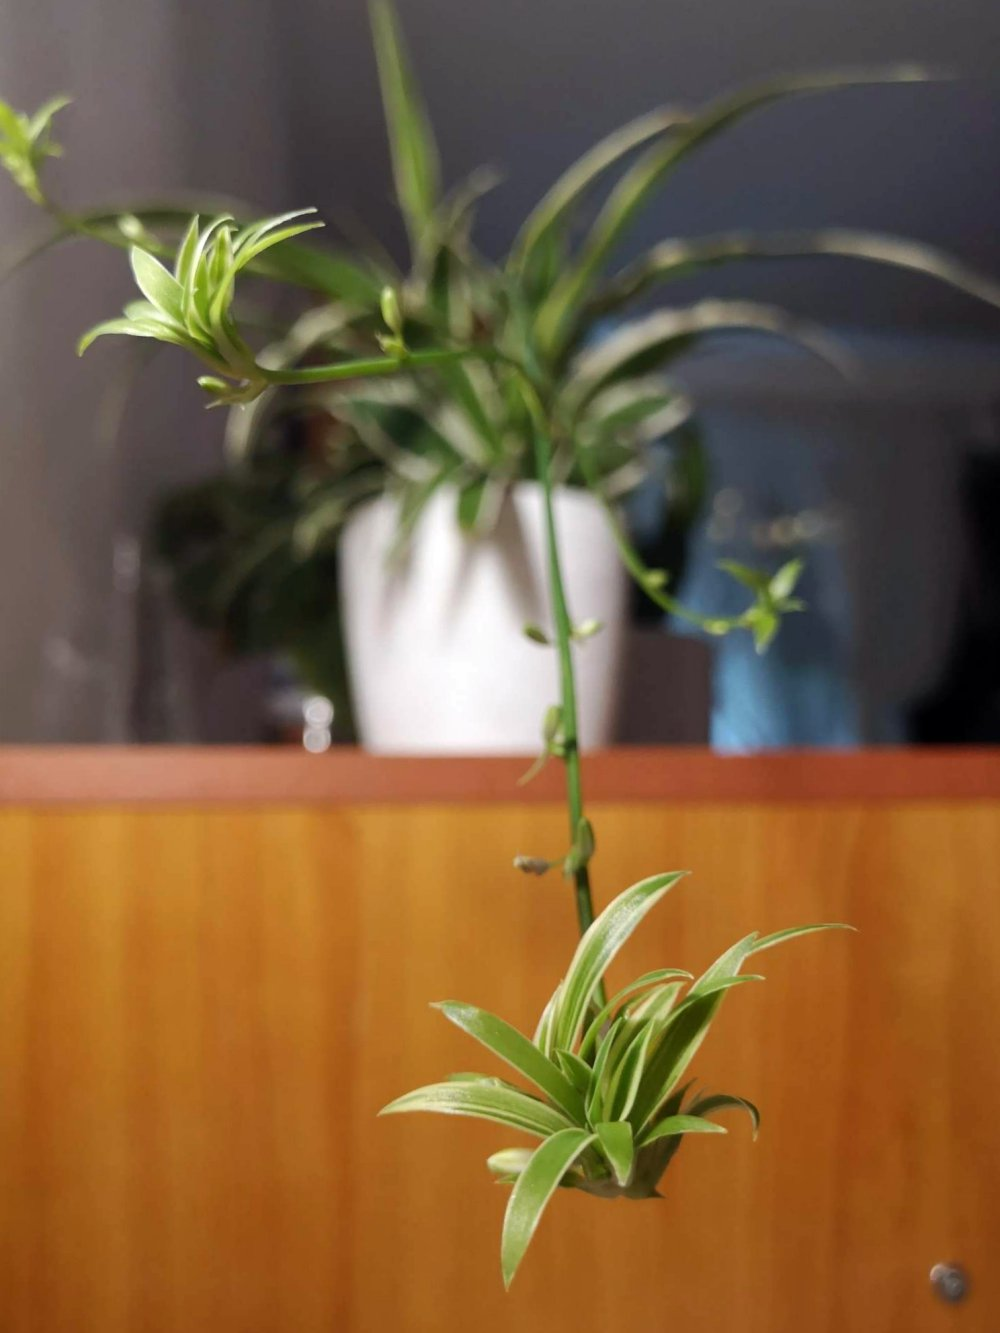 Spider plant care guide - close-up